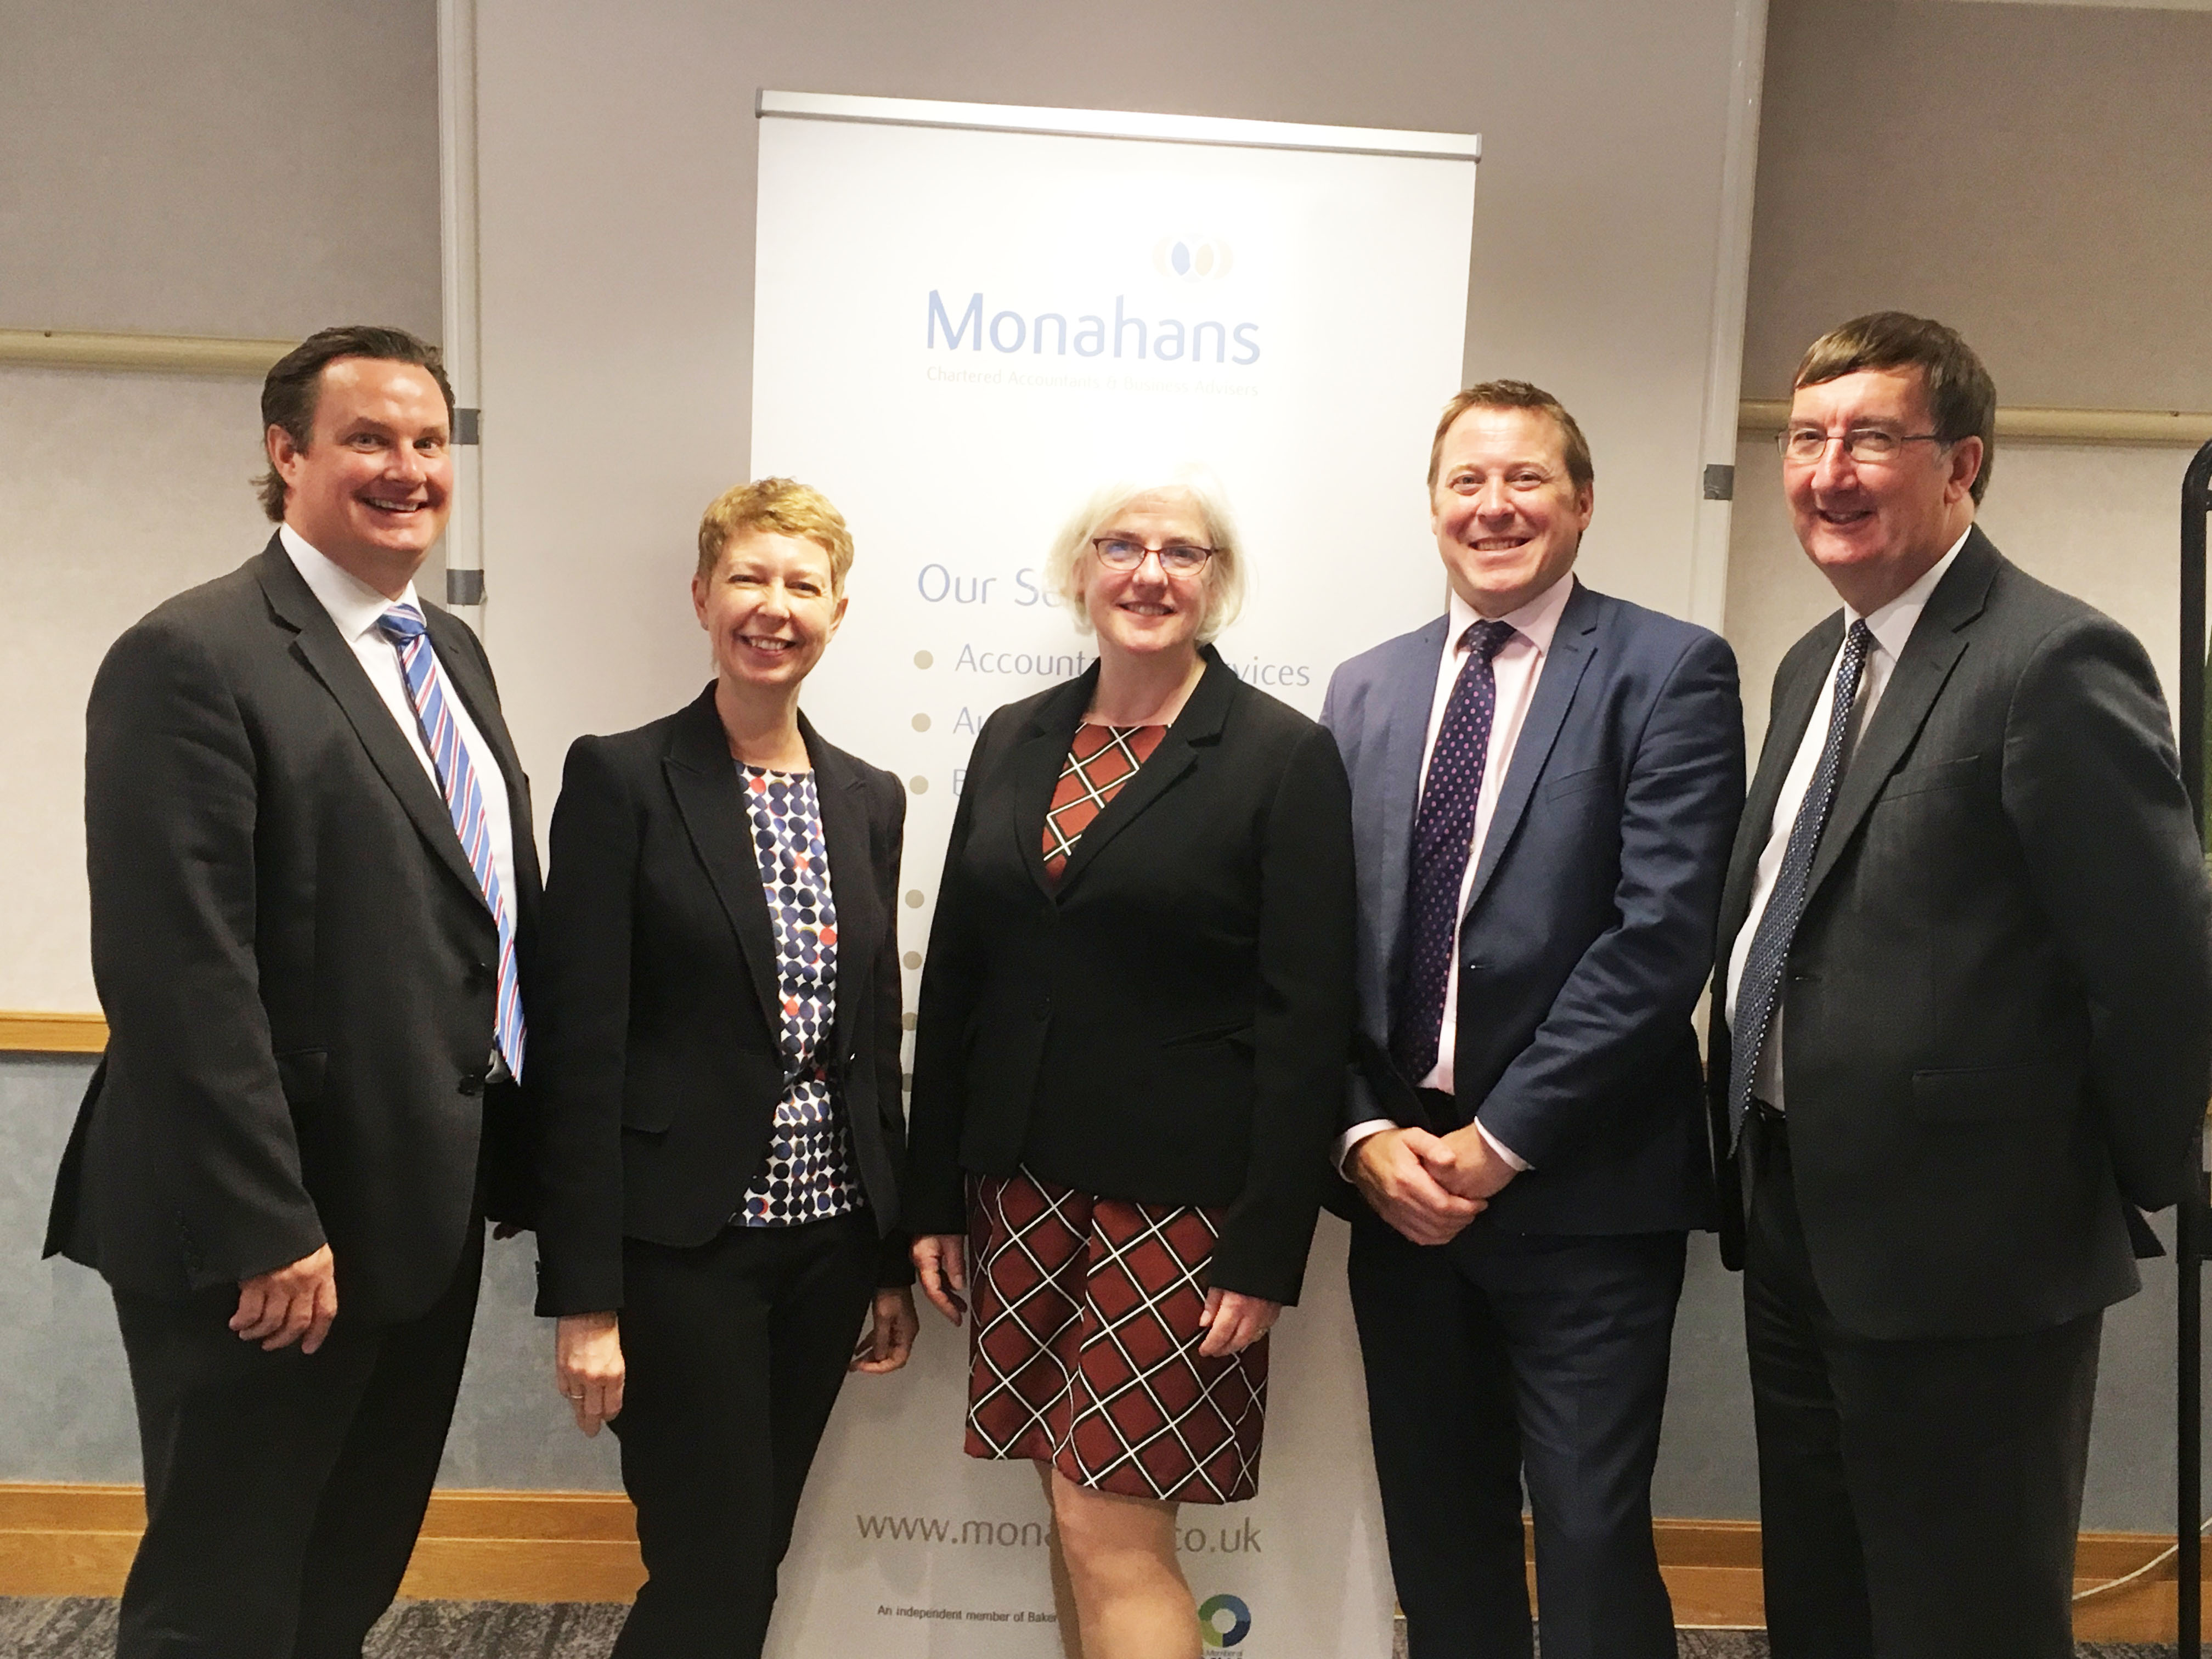 Monahans Bank of England Breakfast returns to give businesses inflation insight